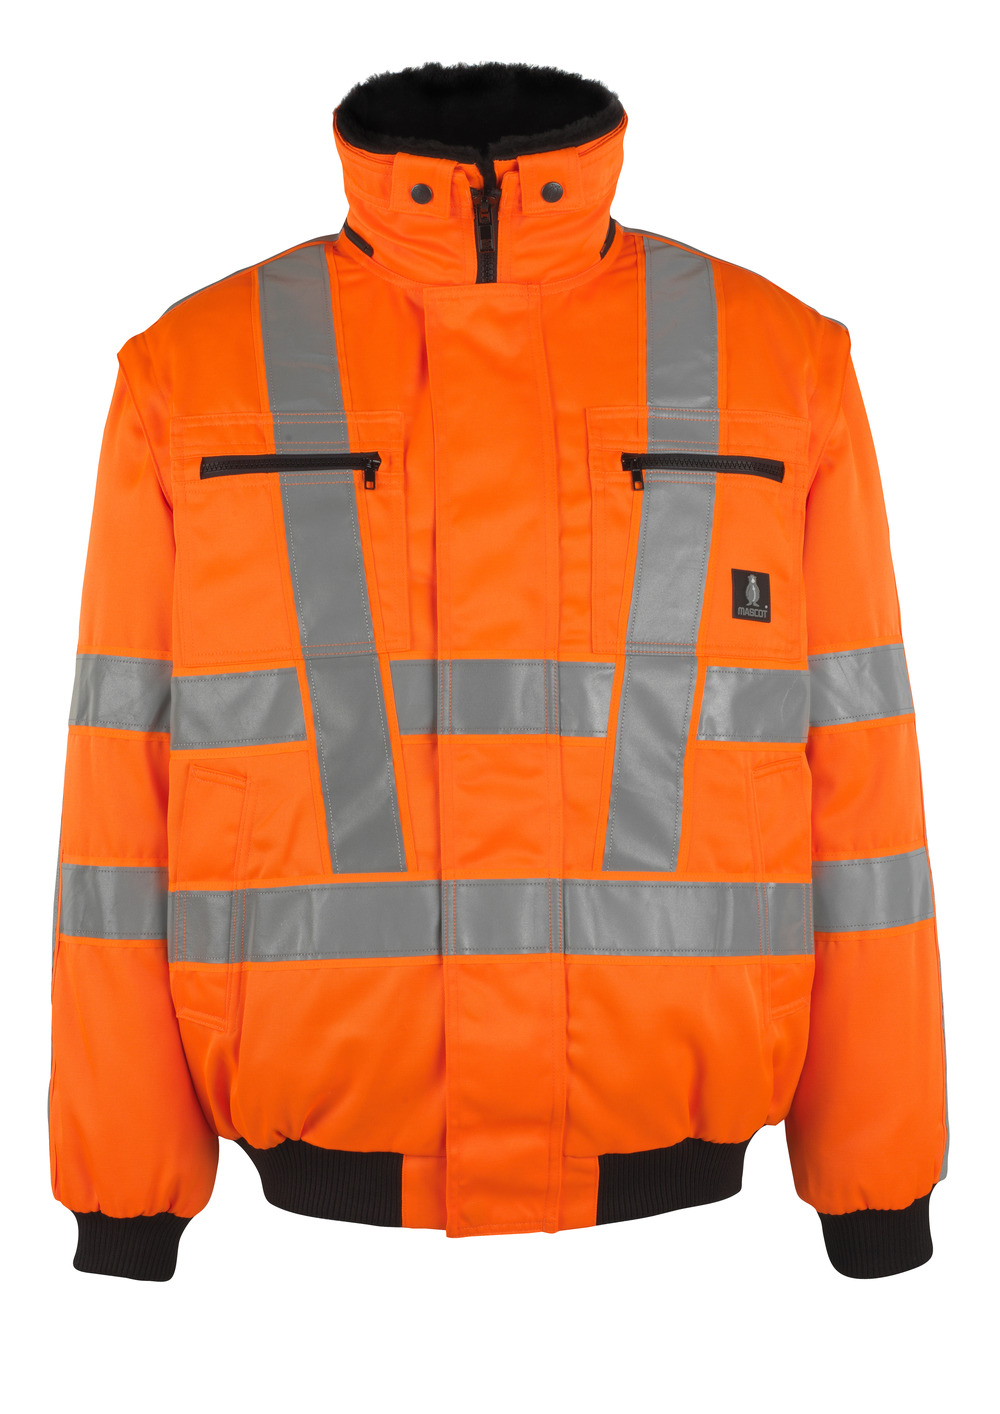 05020-660-14 Pilotjacke - hi-vis Orange